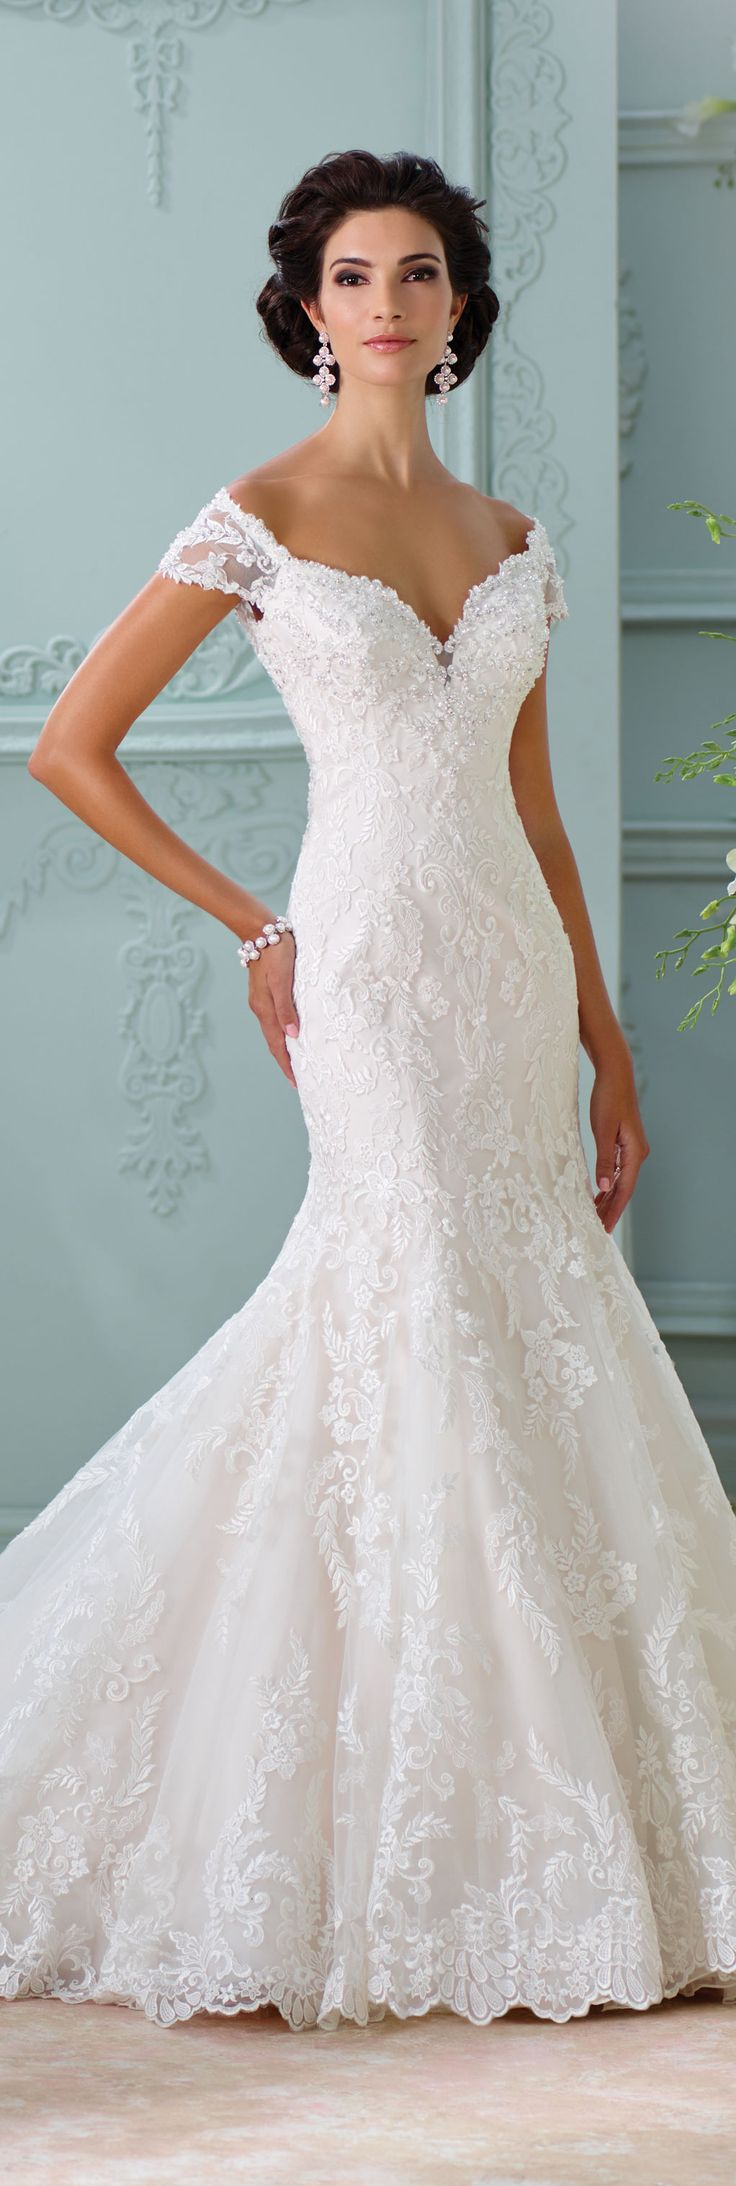 The David Tutera for Mon Cheri Spring 2016 Wedding Gown Collection - Style No. 116201 Aura #laceweddingdresses